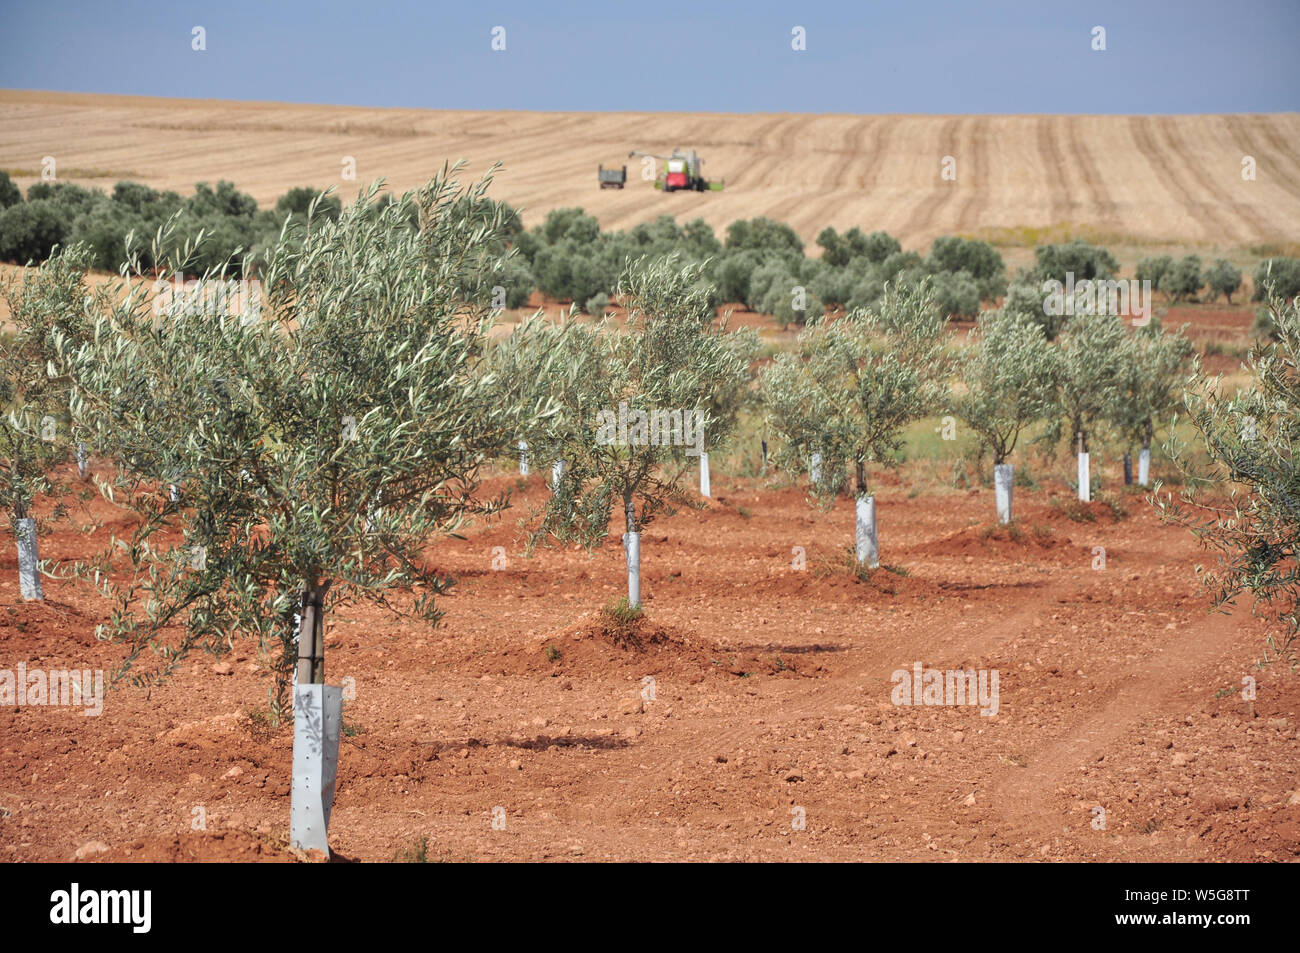 Spanish Agroculture. Olives trees plantation in Campillos, Andalucía. Wheat grain harvest in the background Stock Photo